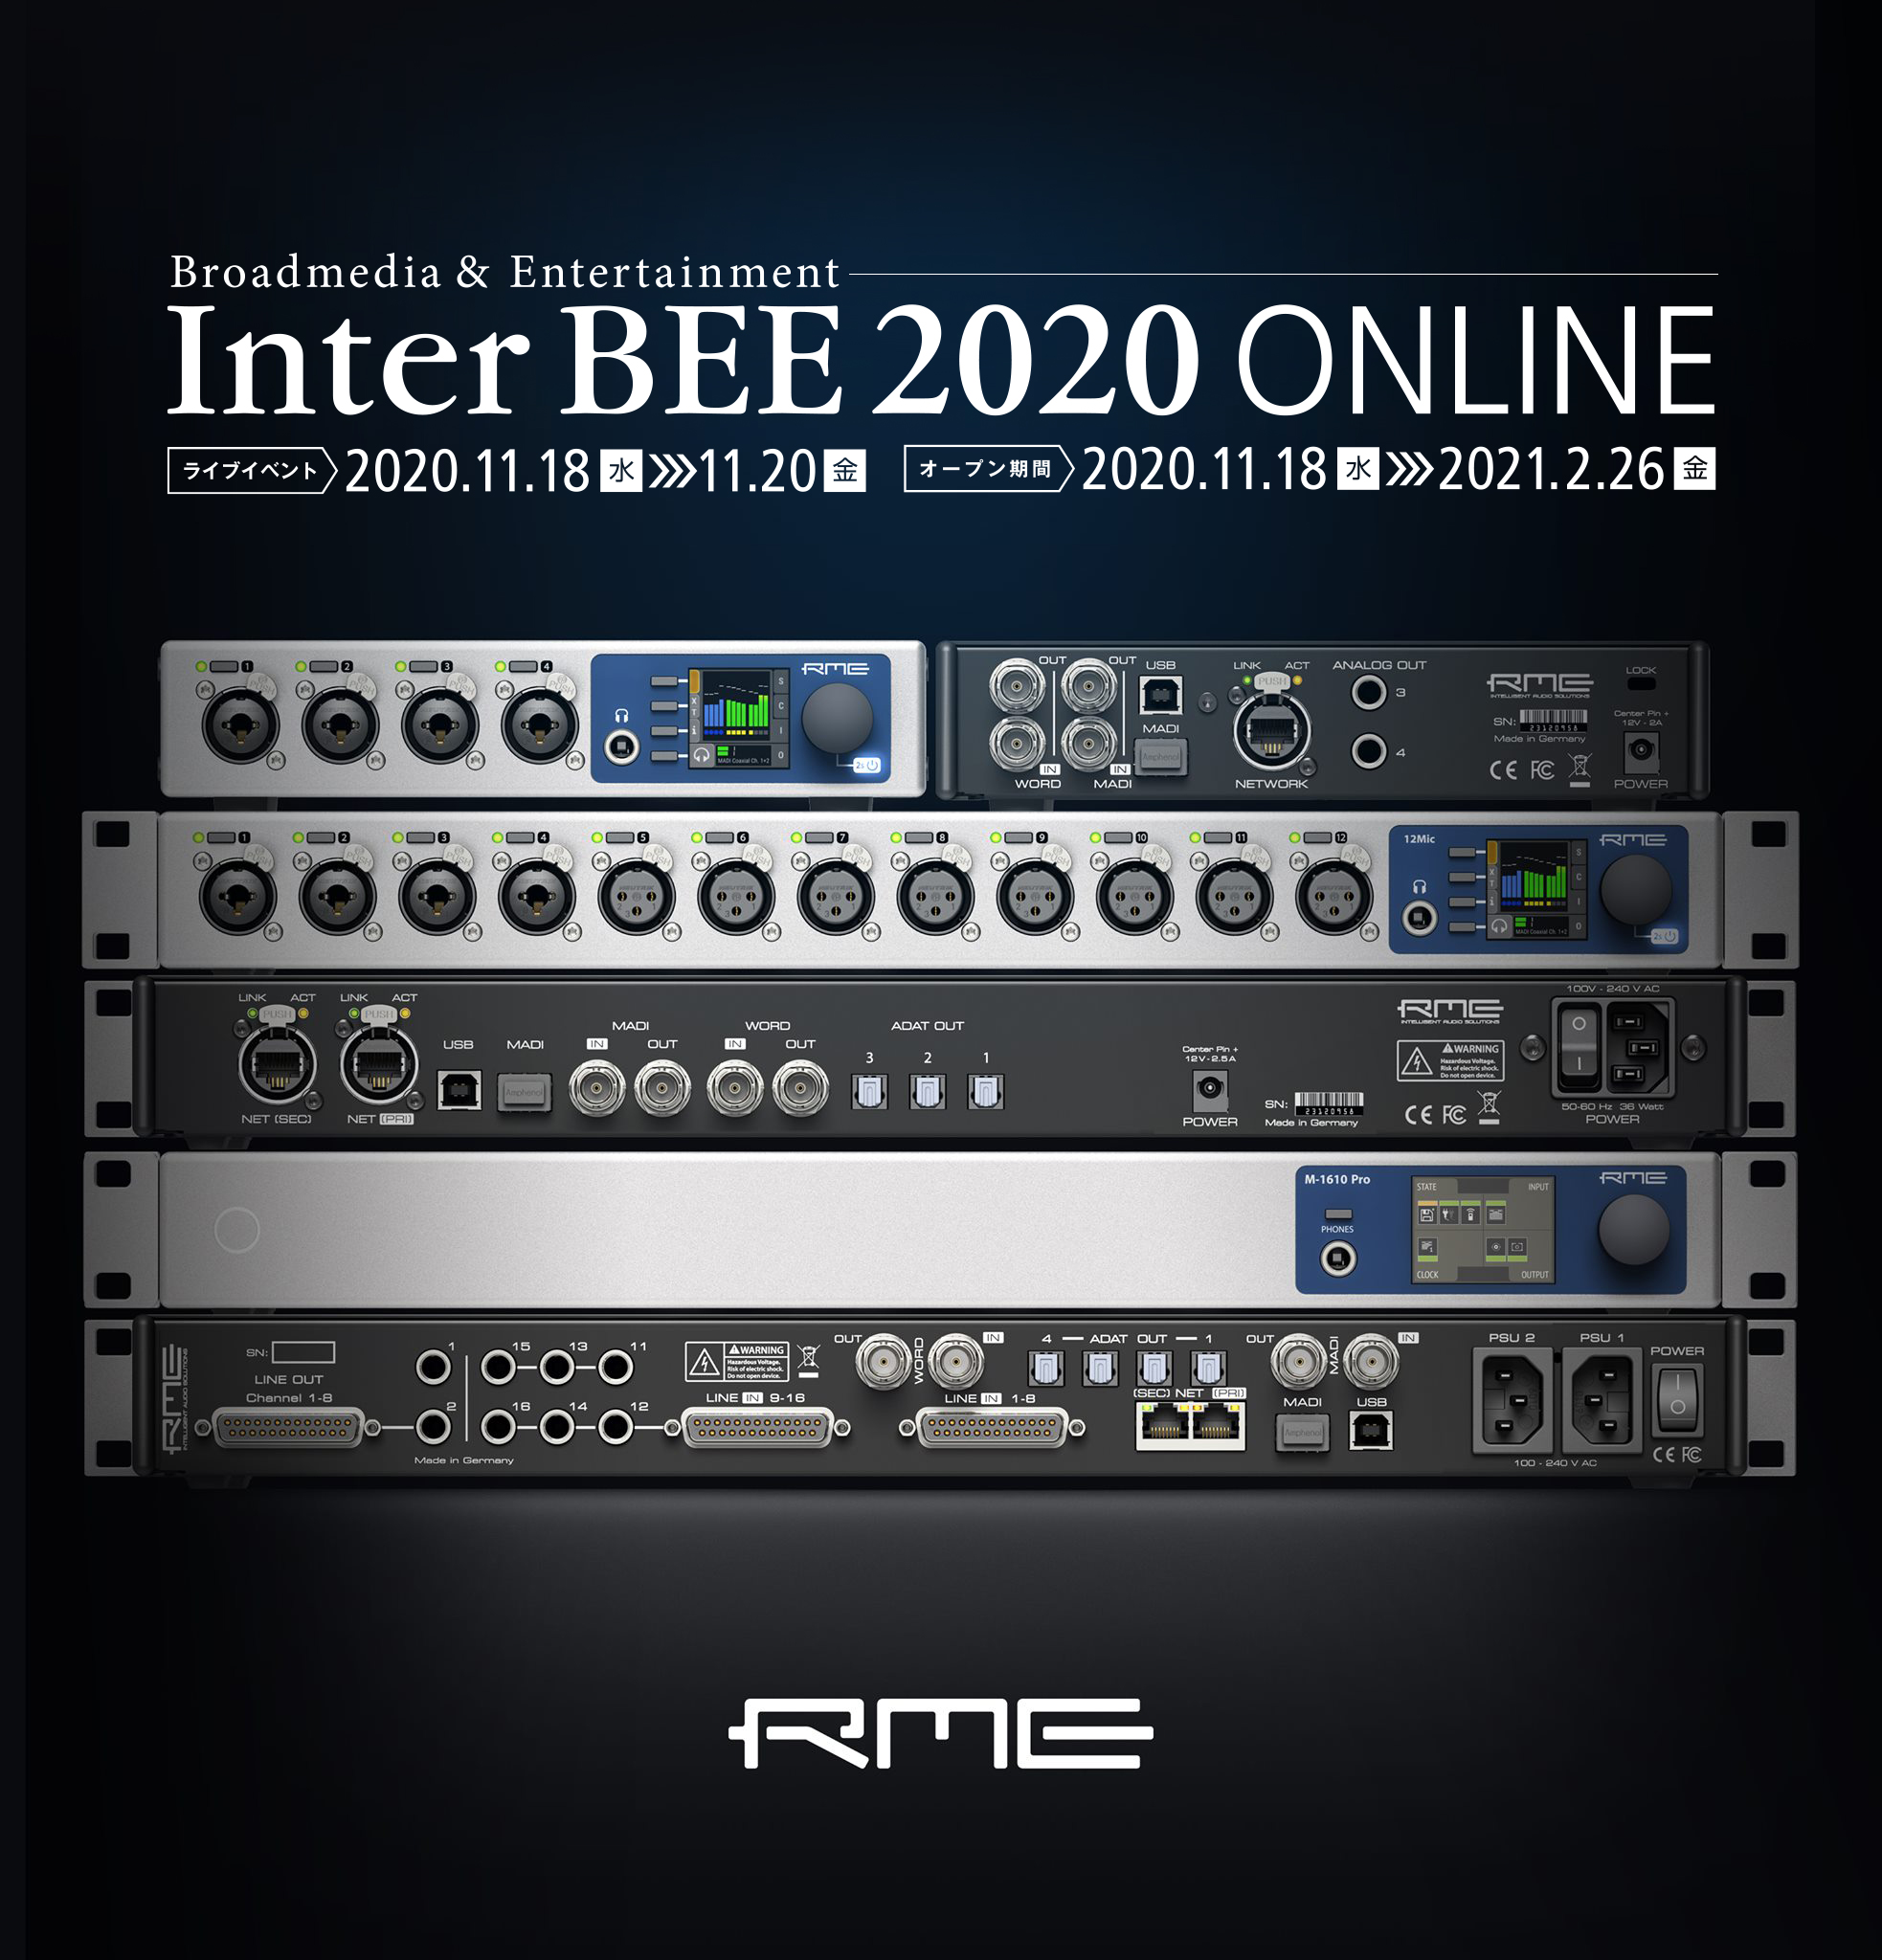 tl_files/newsletter/20201118-interbee/interbee2020_synthax.jpg